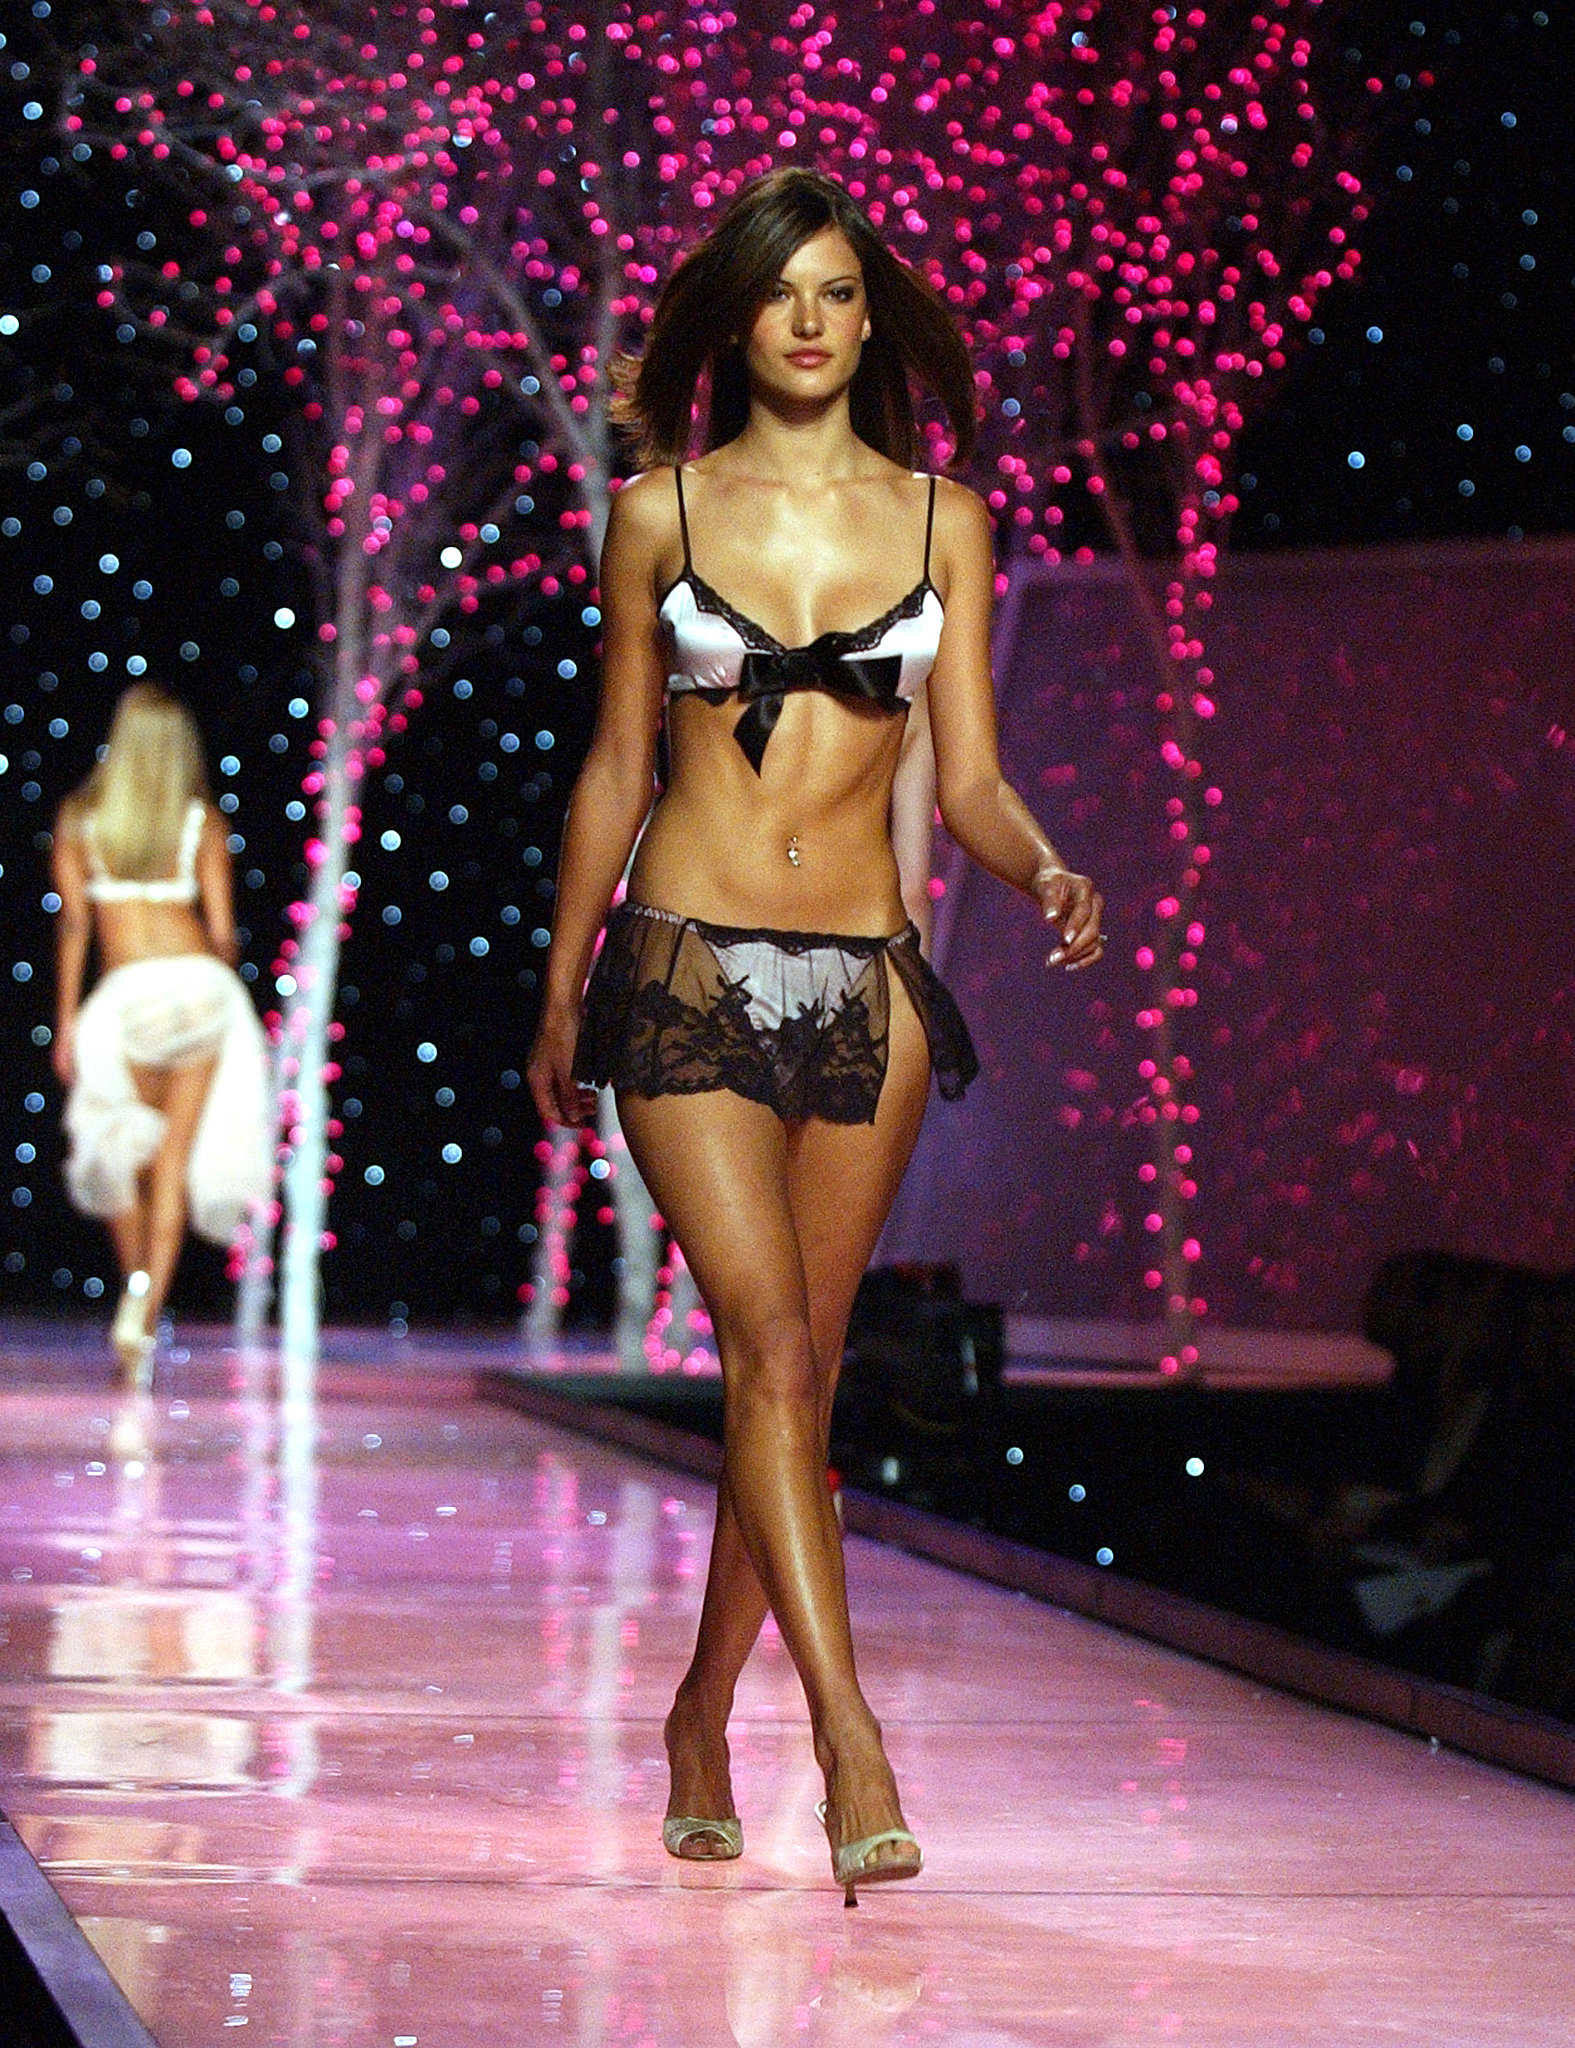 Alessandra Ambrosio was bronzed and bow-tied in 2001.